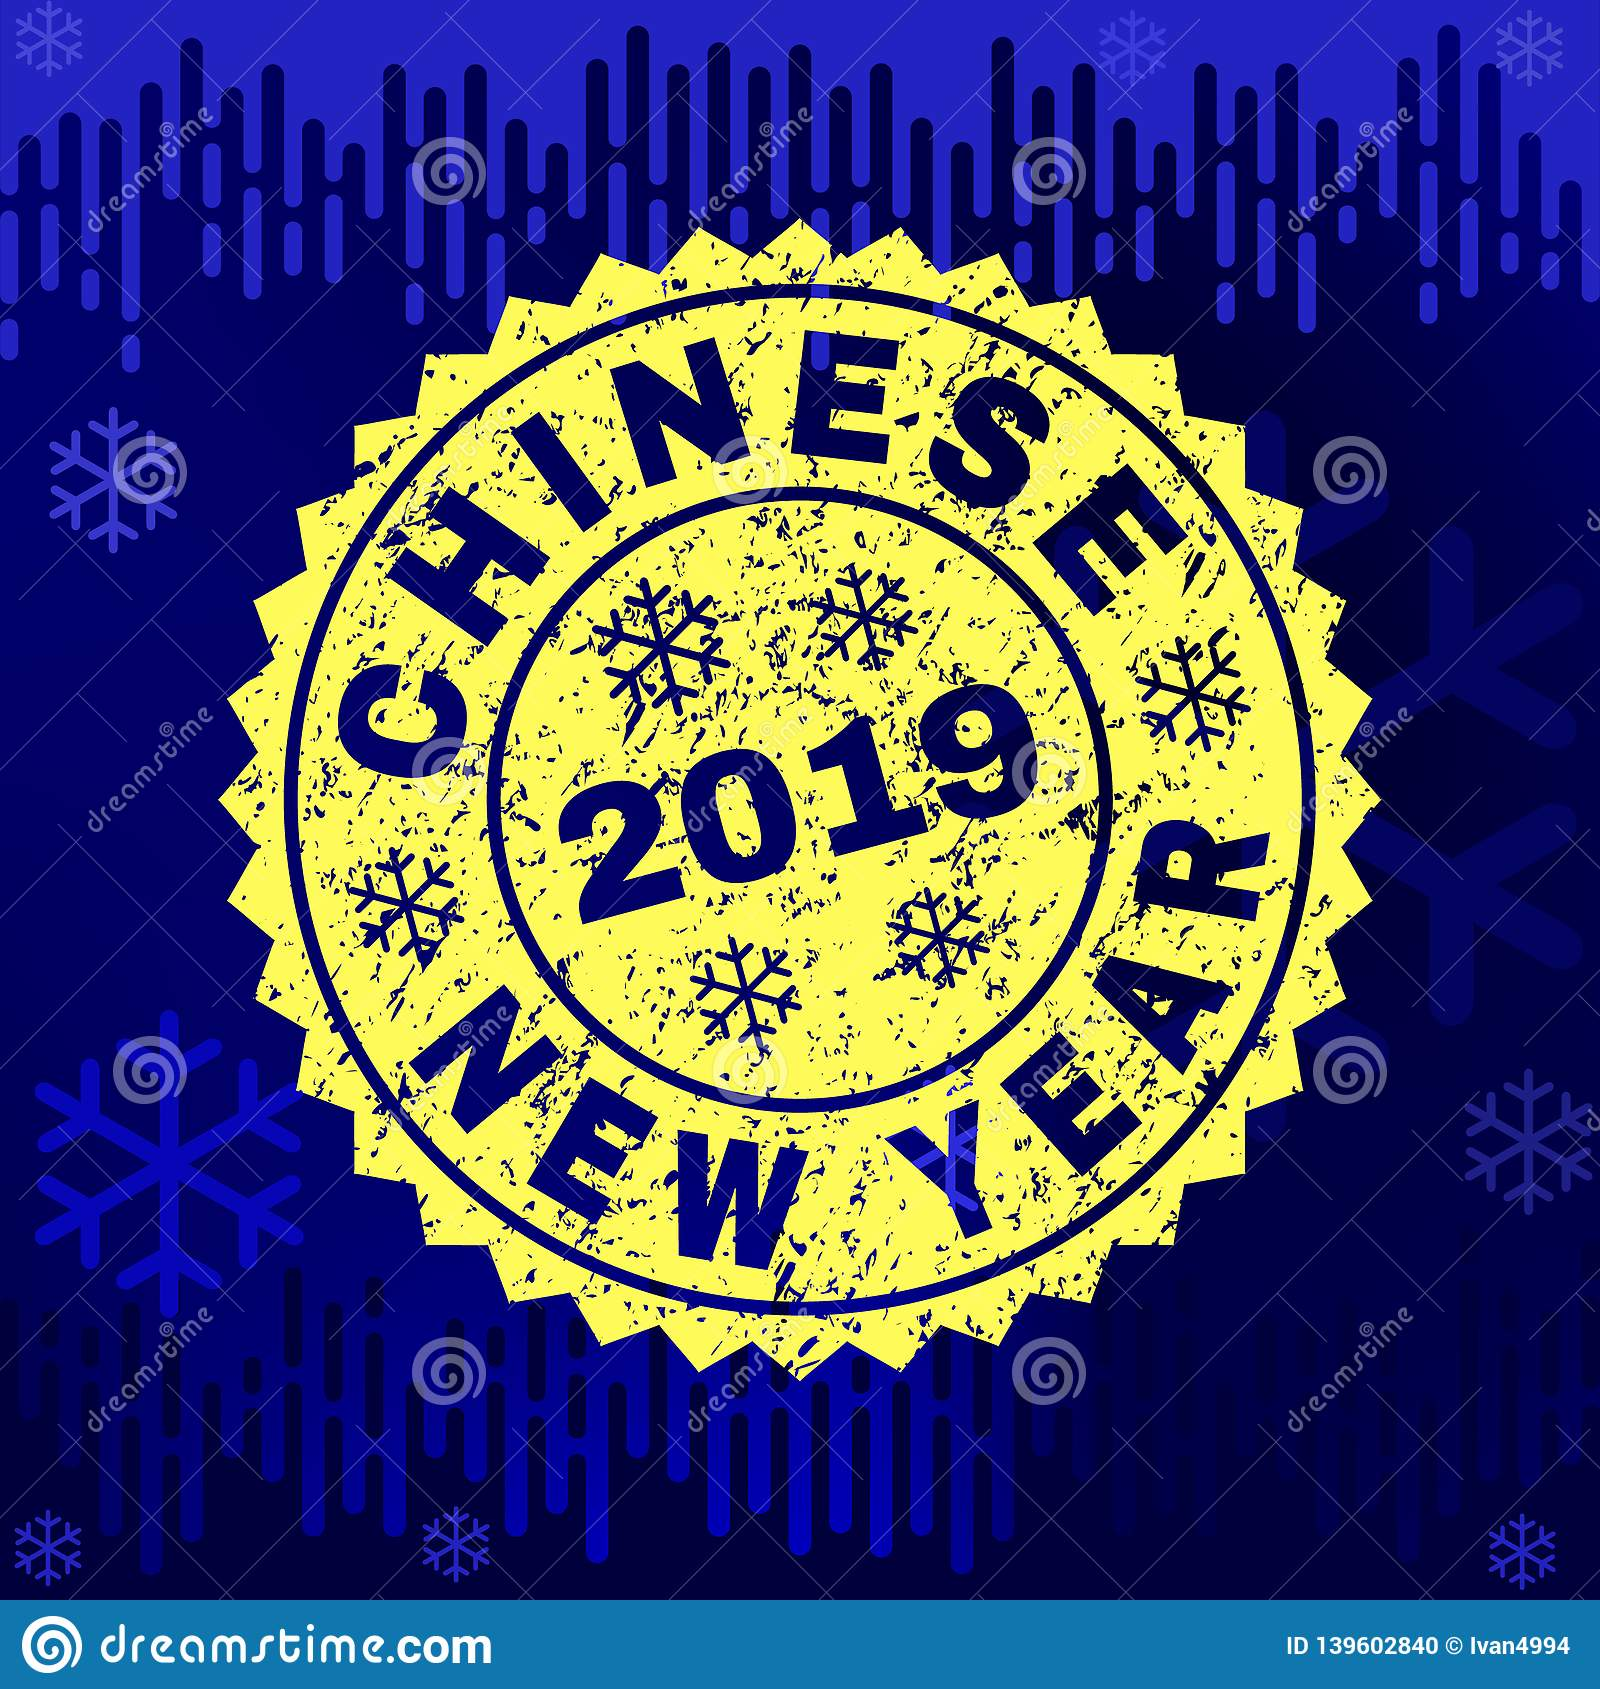 Textured CHINESE NEW YEAR Stamp Seal on Winter Background